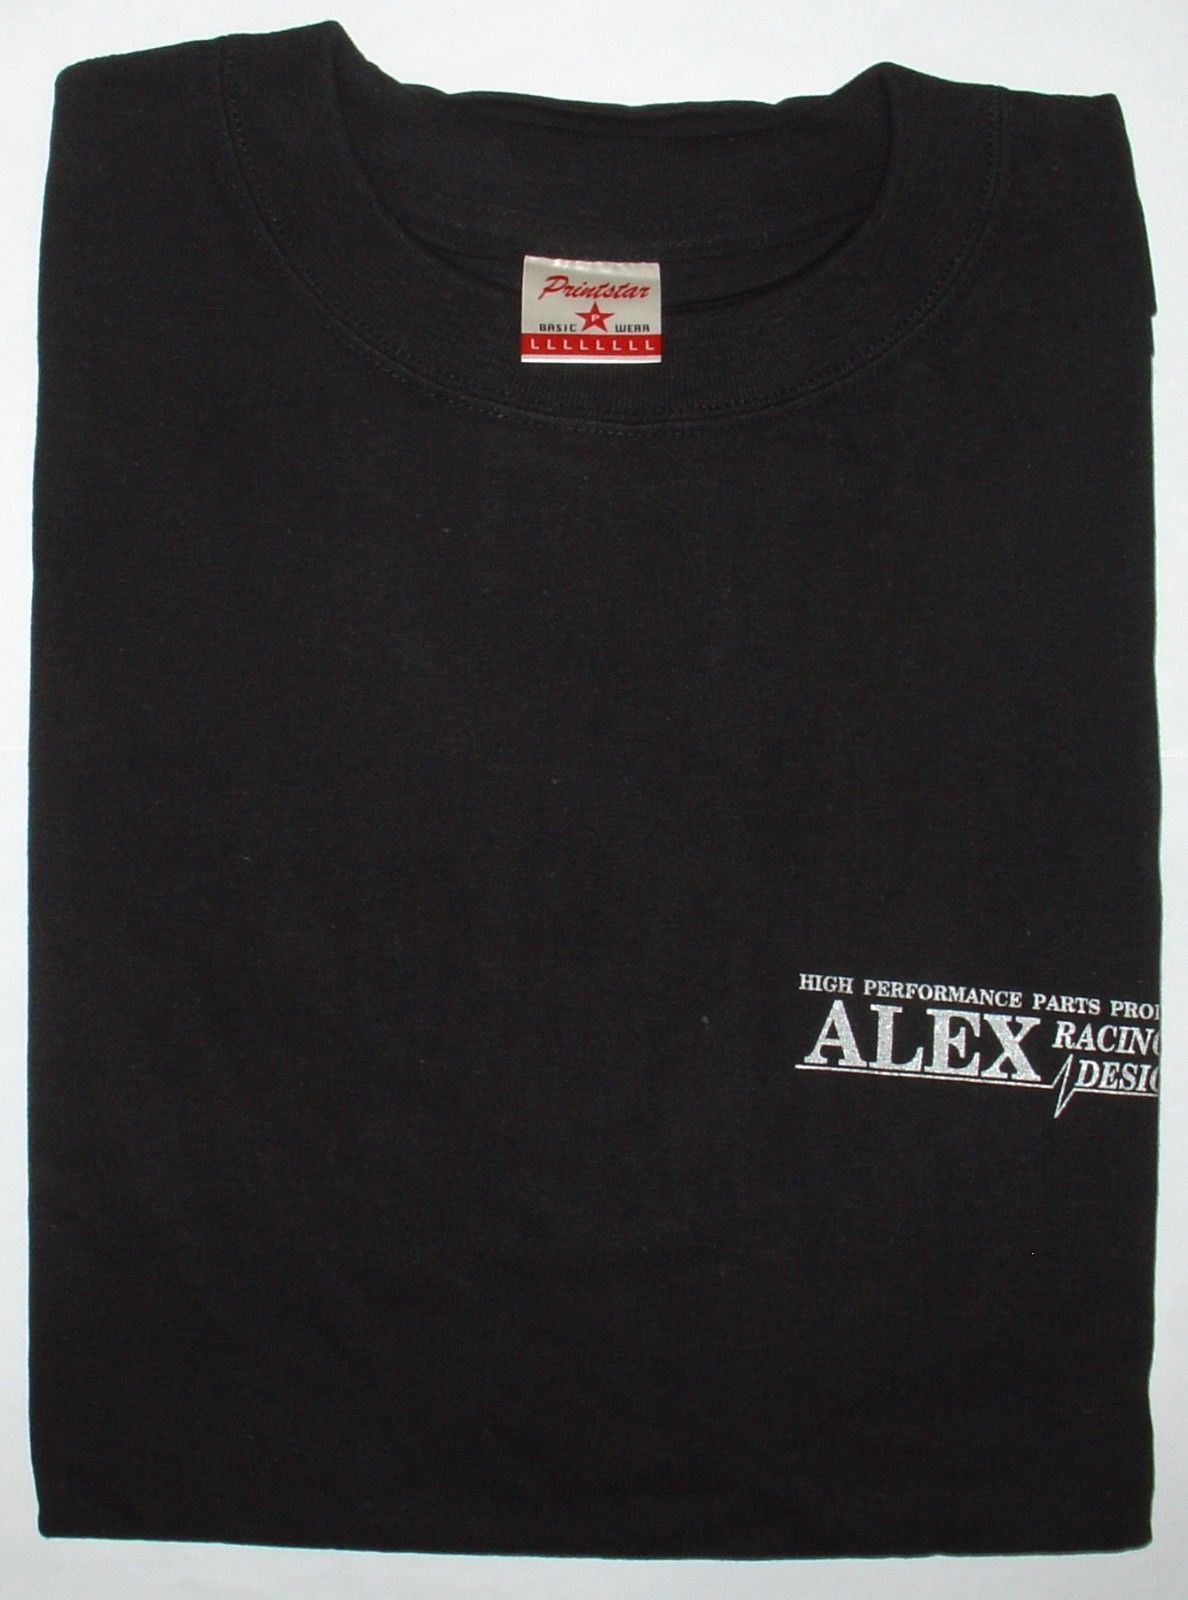 Alex Racing Design B-1010BK - ARD T-Shirt Black L-Size